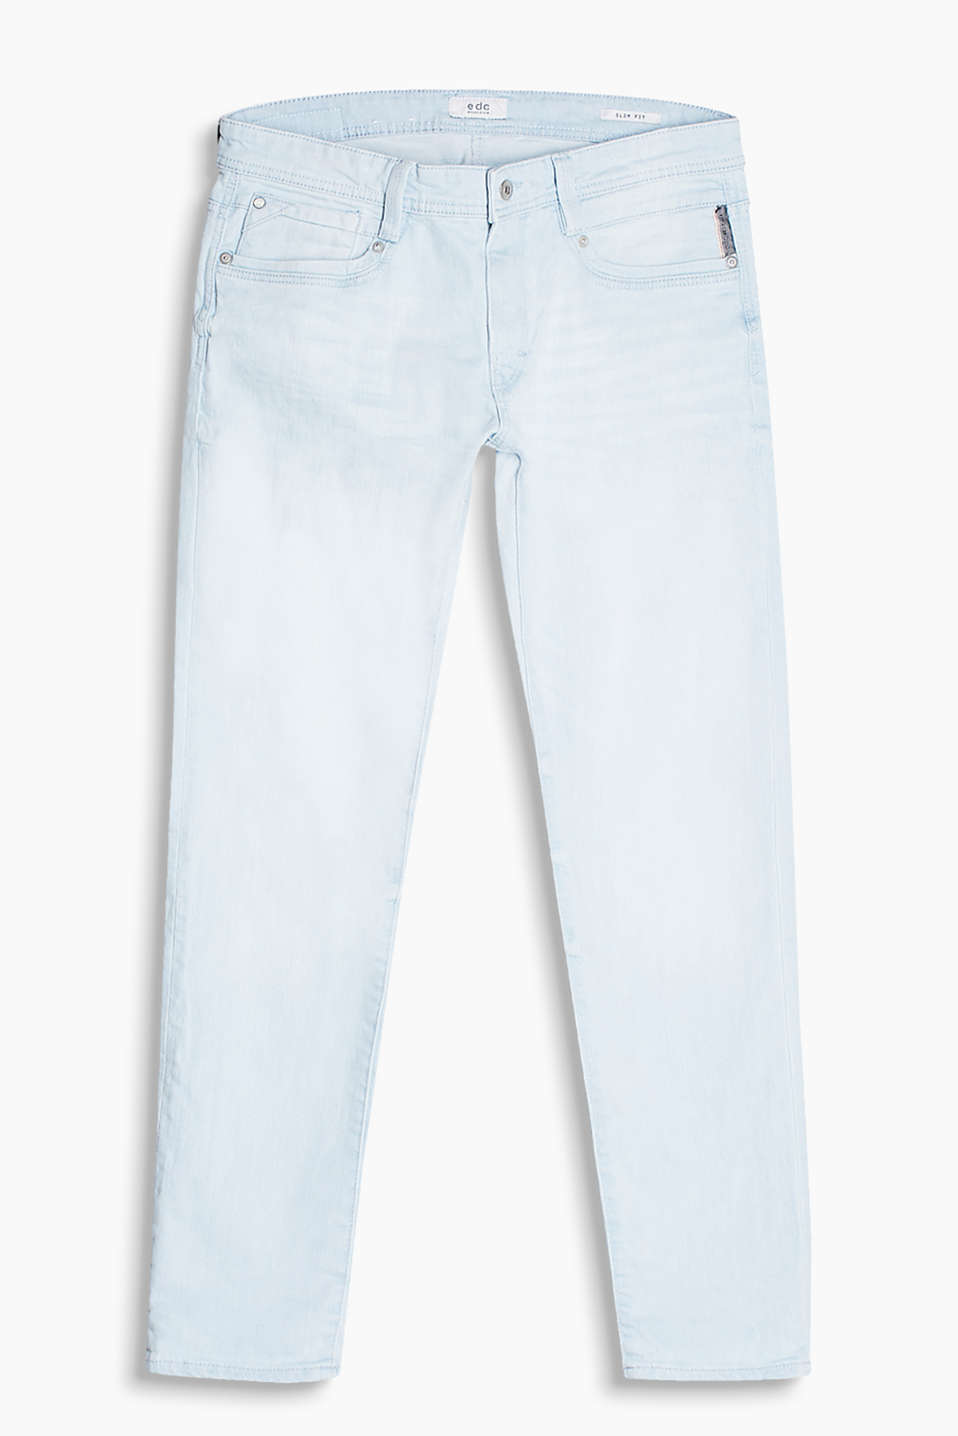 Comfy stretch jeans with urban garment-washed effects